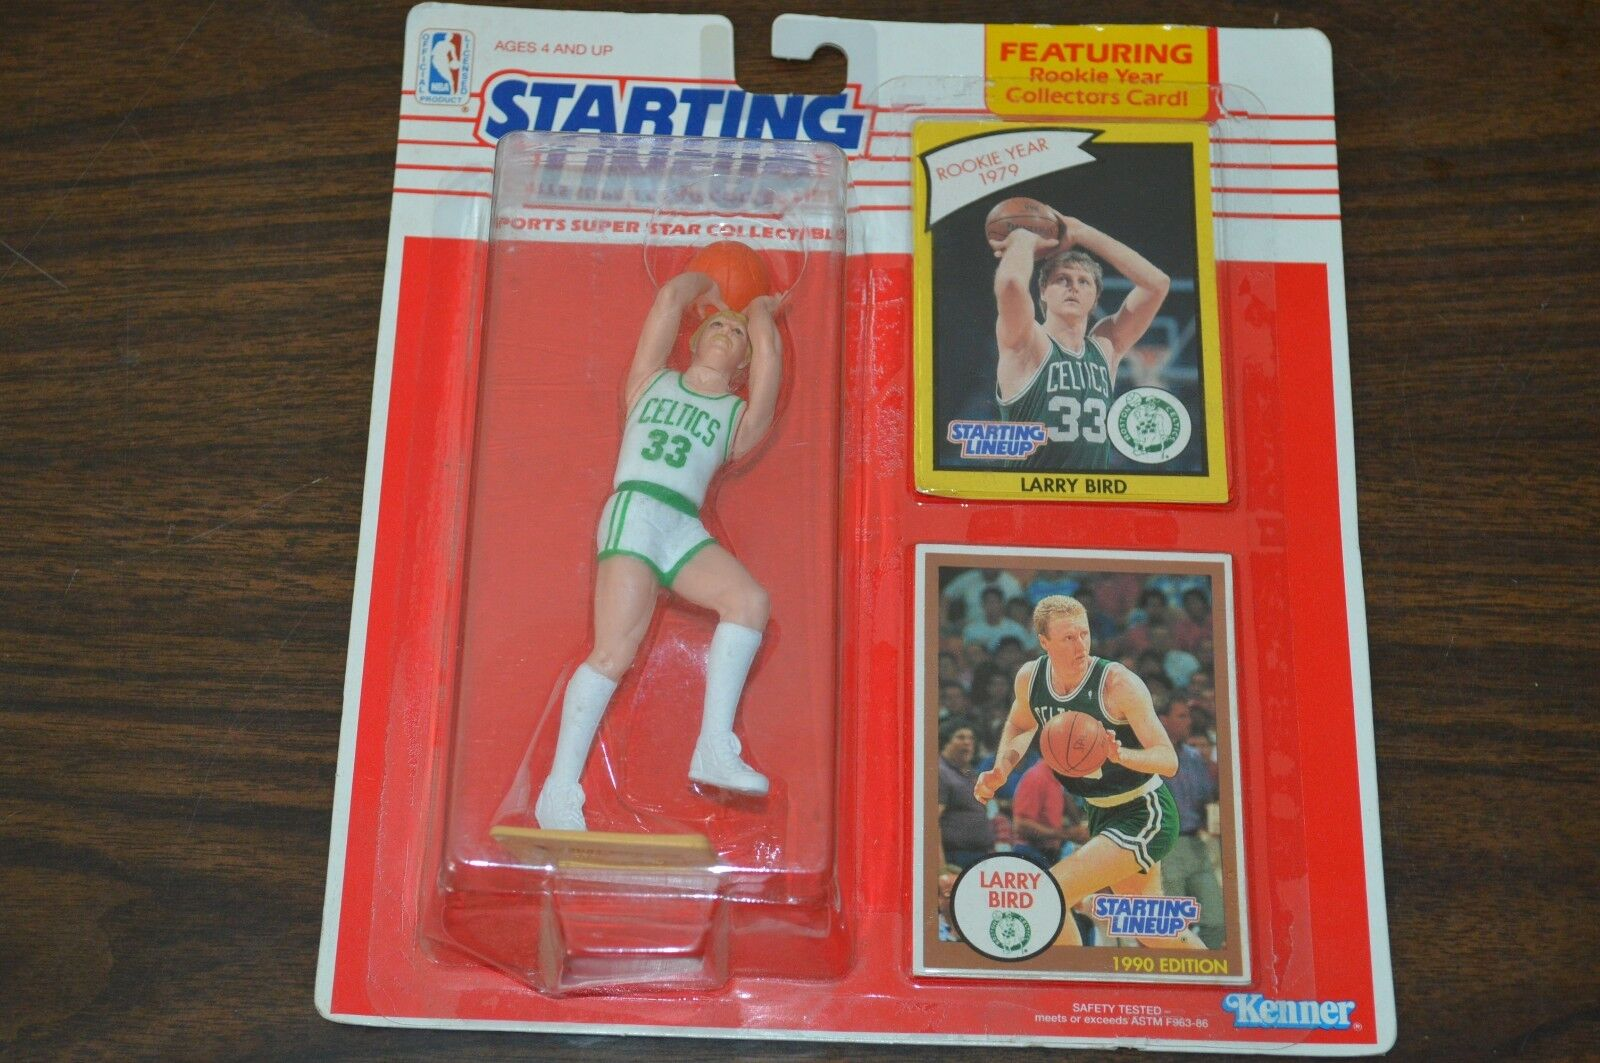 1990 STARTING LINEUP LARRY LARRY LARRY BIRD BASKETBALL PredOTYPE    1 OF 1    MUST SEE    a1af49